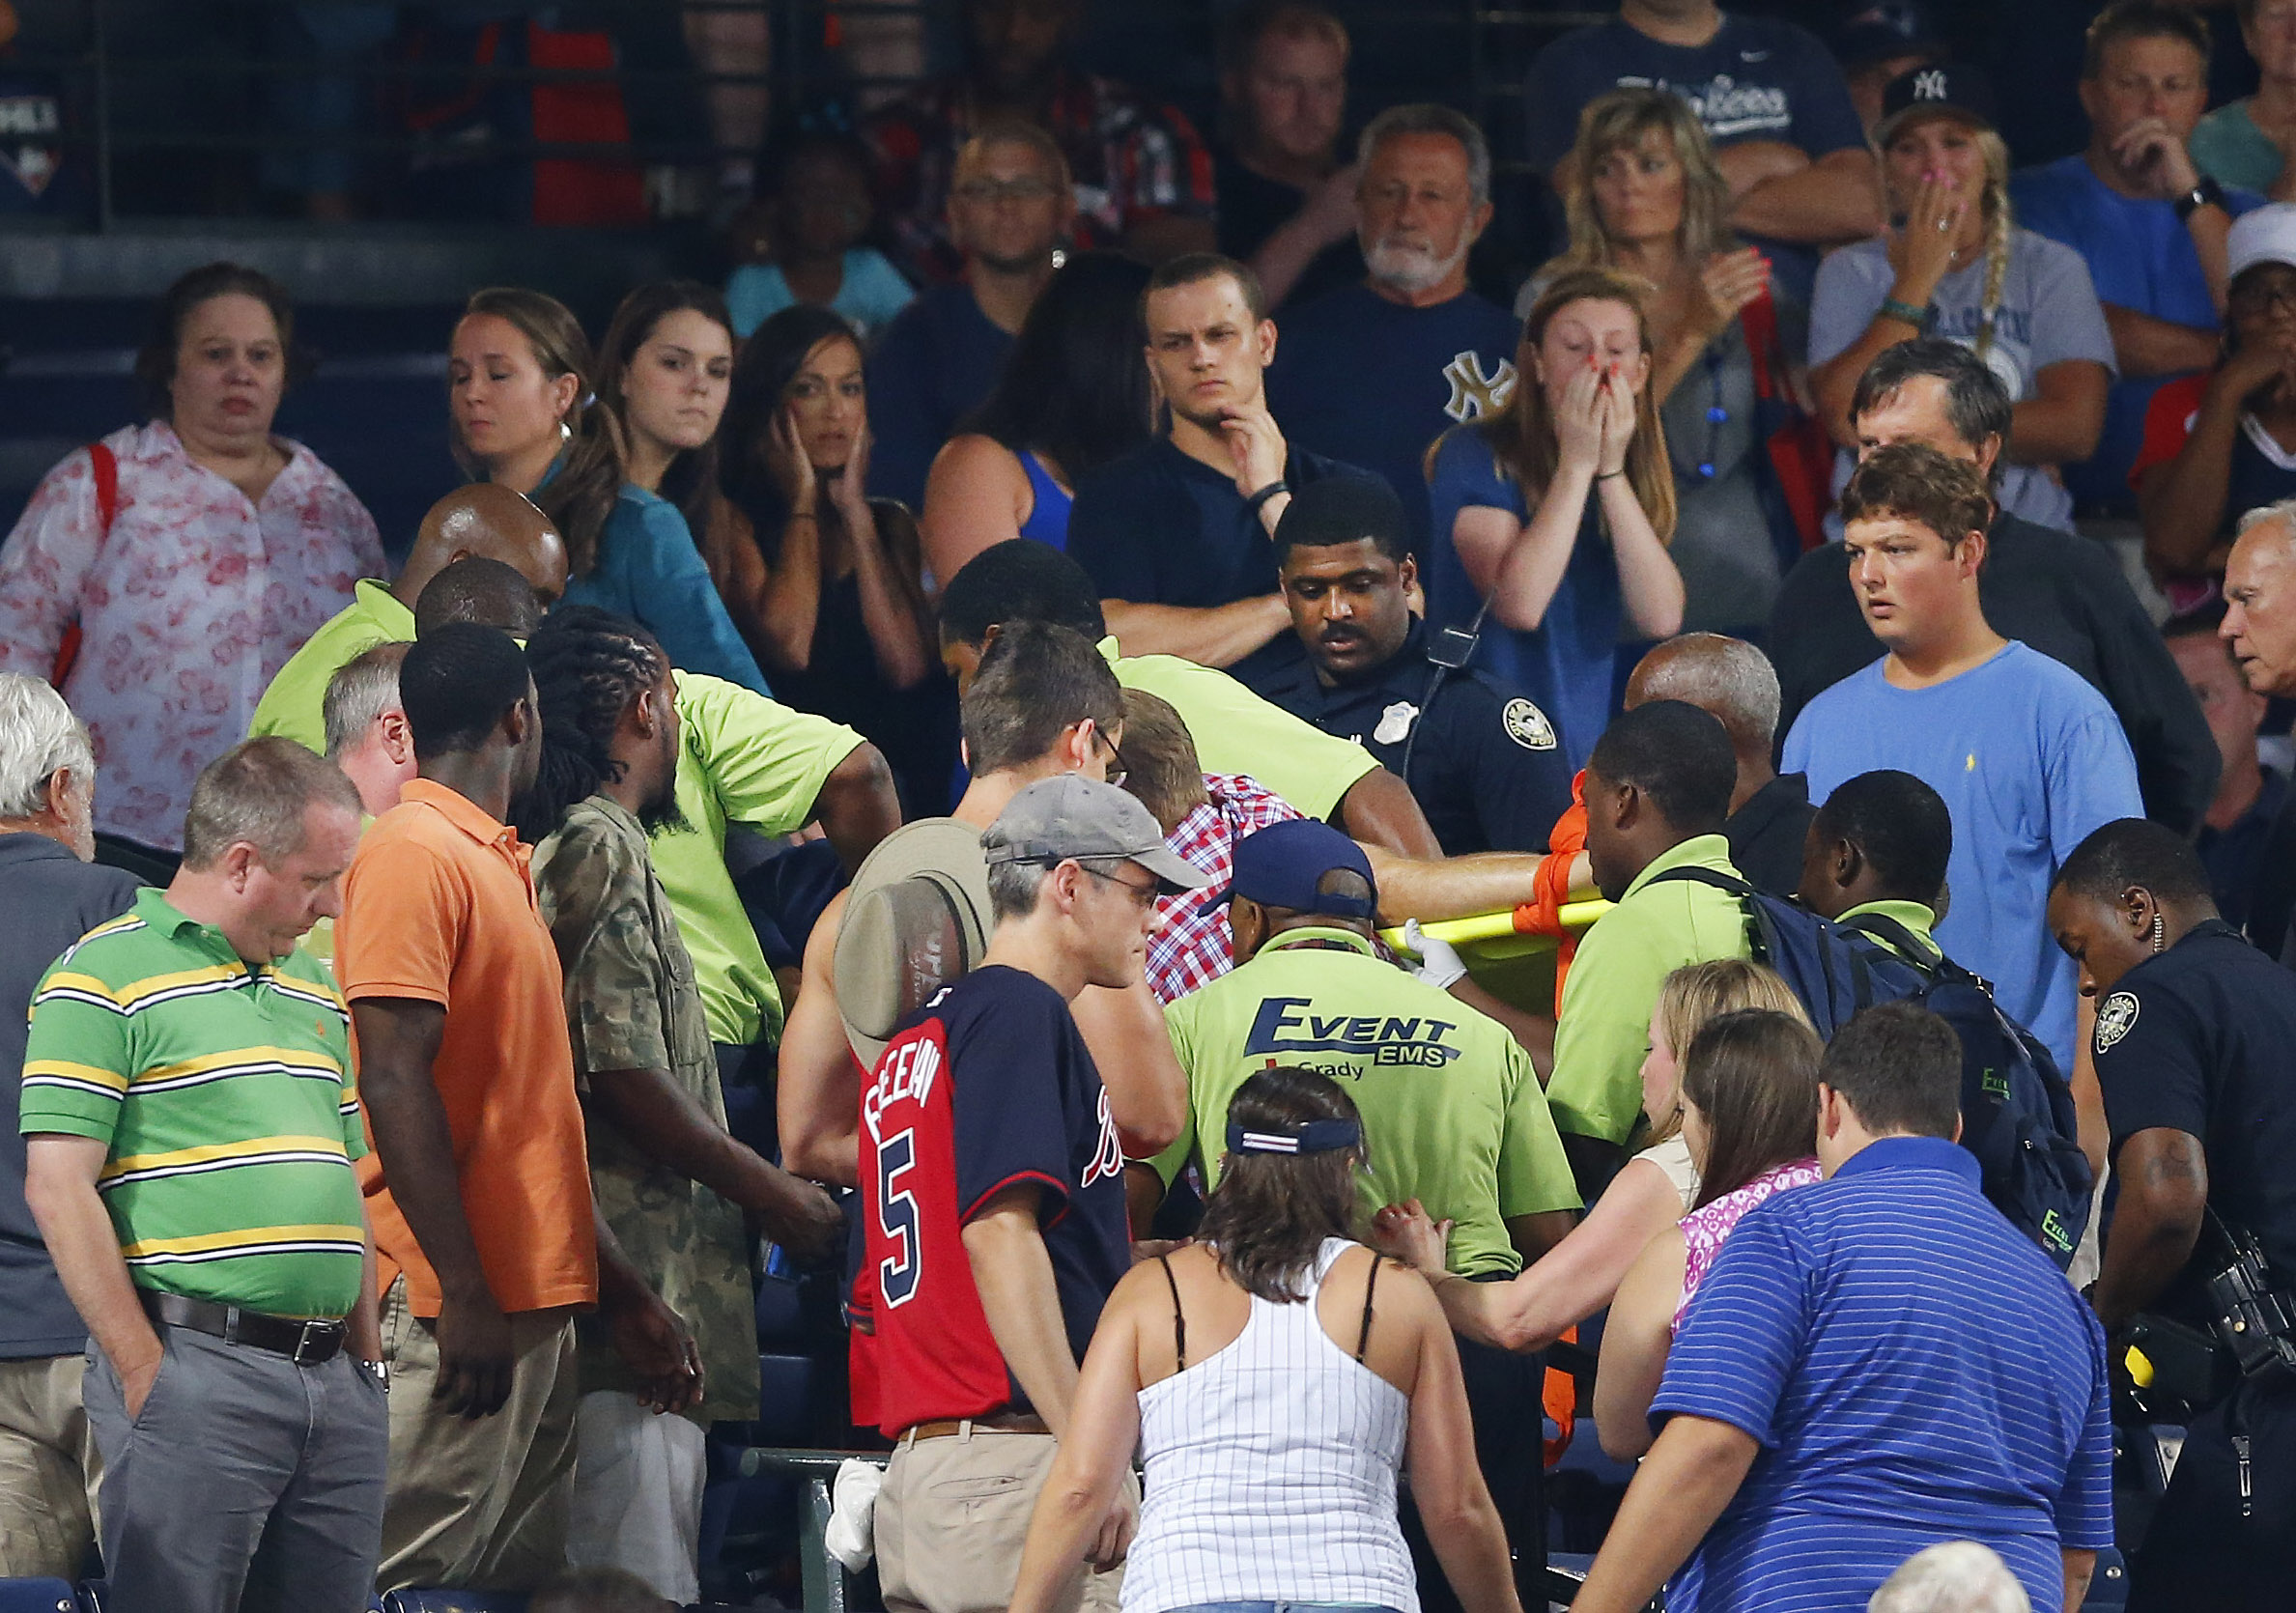 Rescue workers carry an injured fan from the stands at Turner Field during a baseball game between Atlanta Braves and New York Yankees, Saturday, Aug. 29, 2015, in Atlanta. The fan fell from the upper deck into the lower-level stands and was given emergen